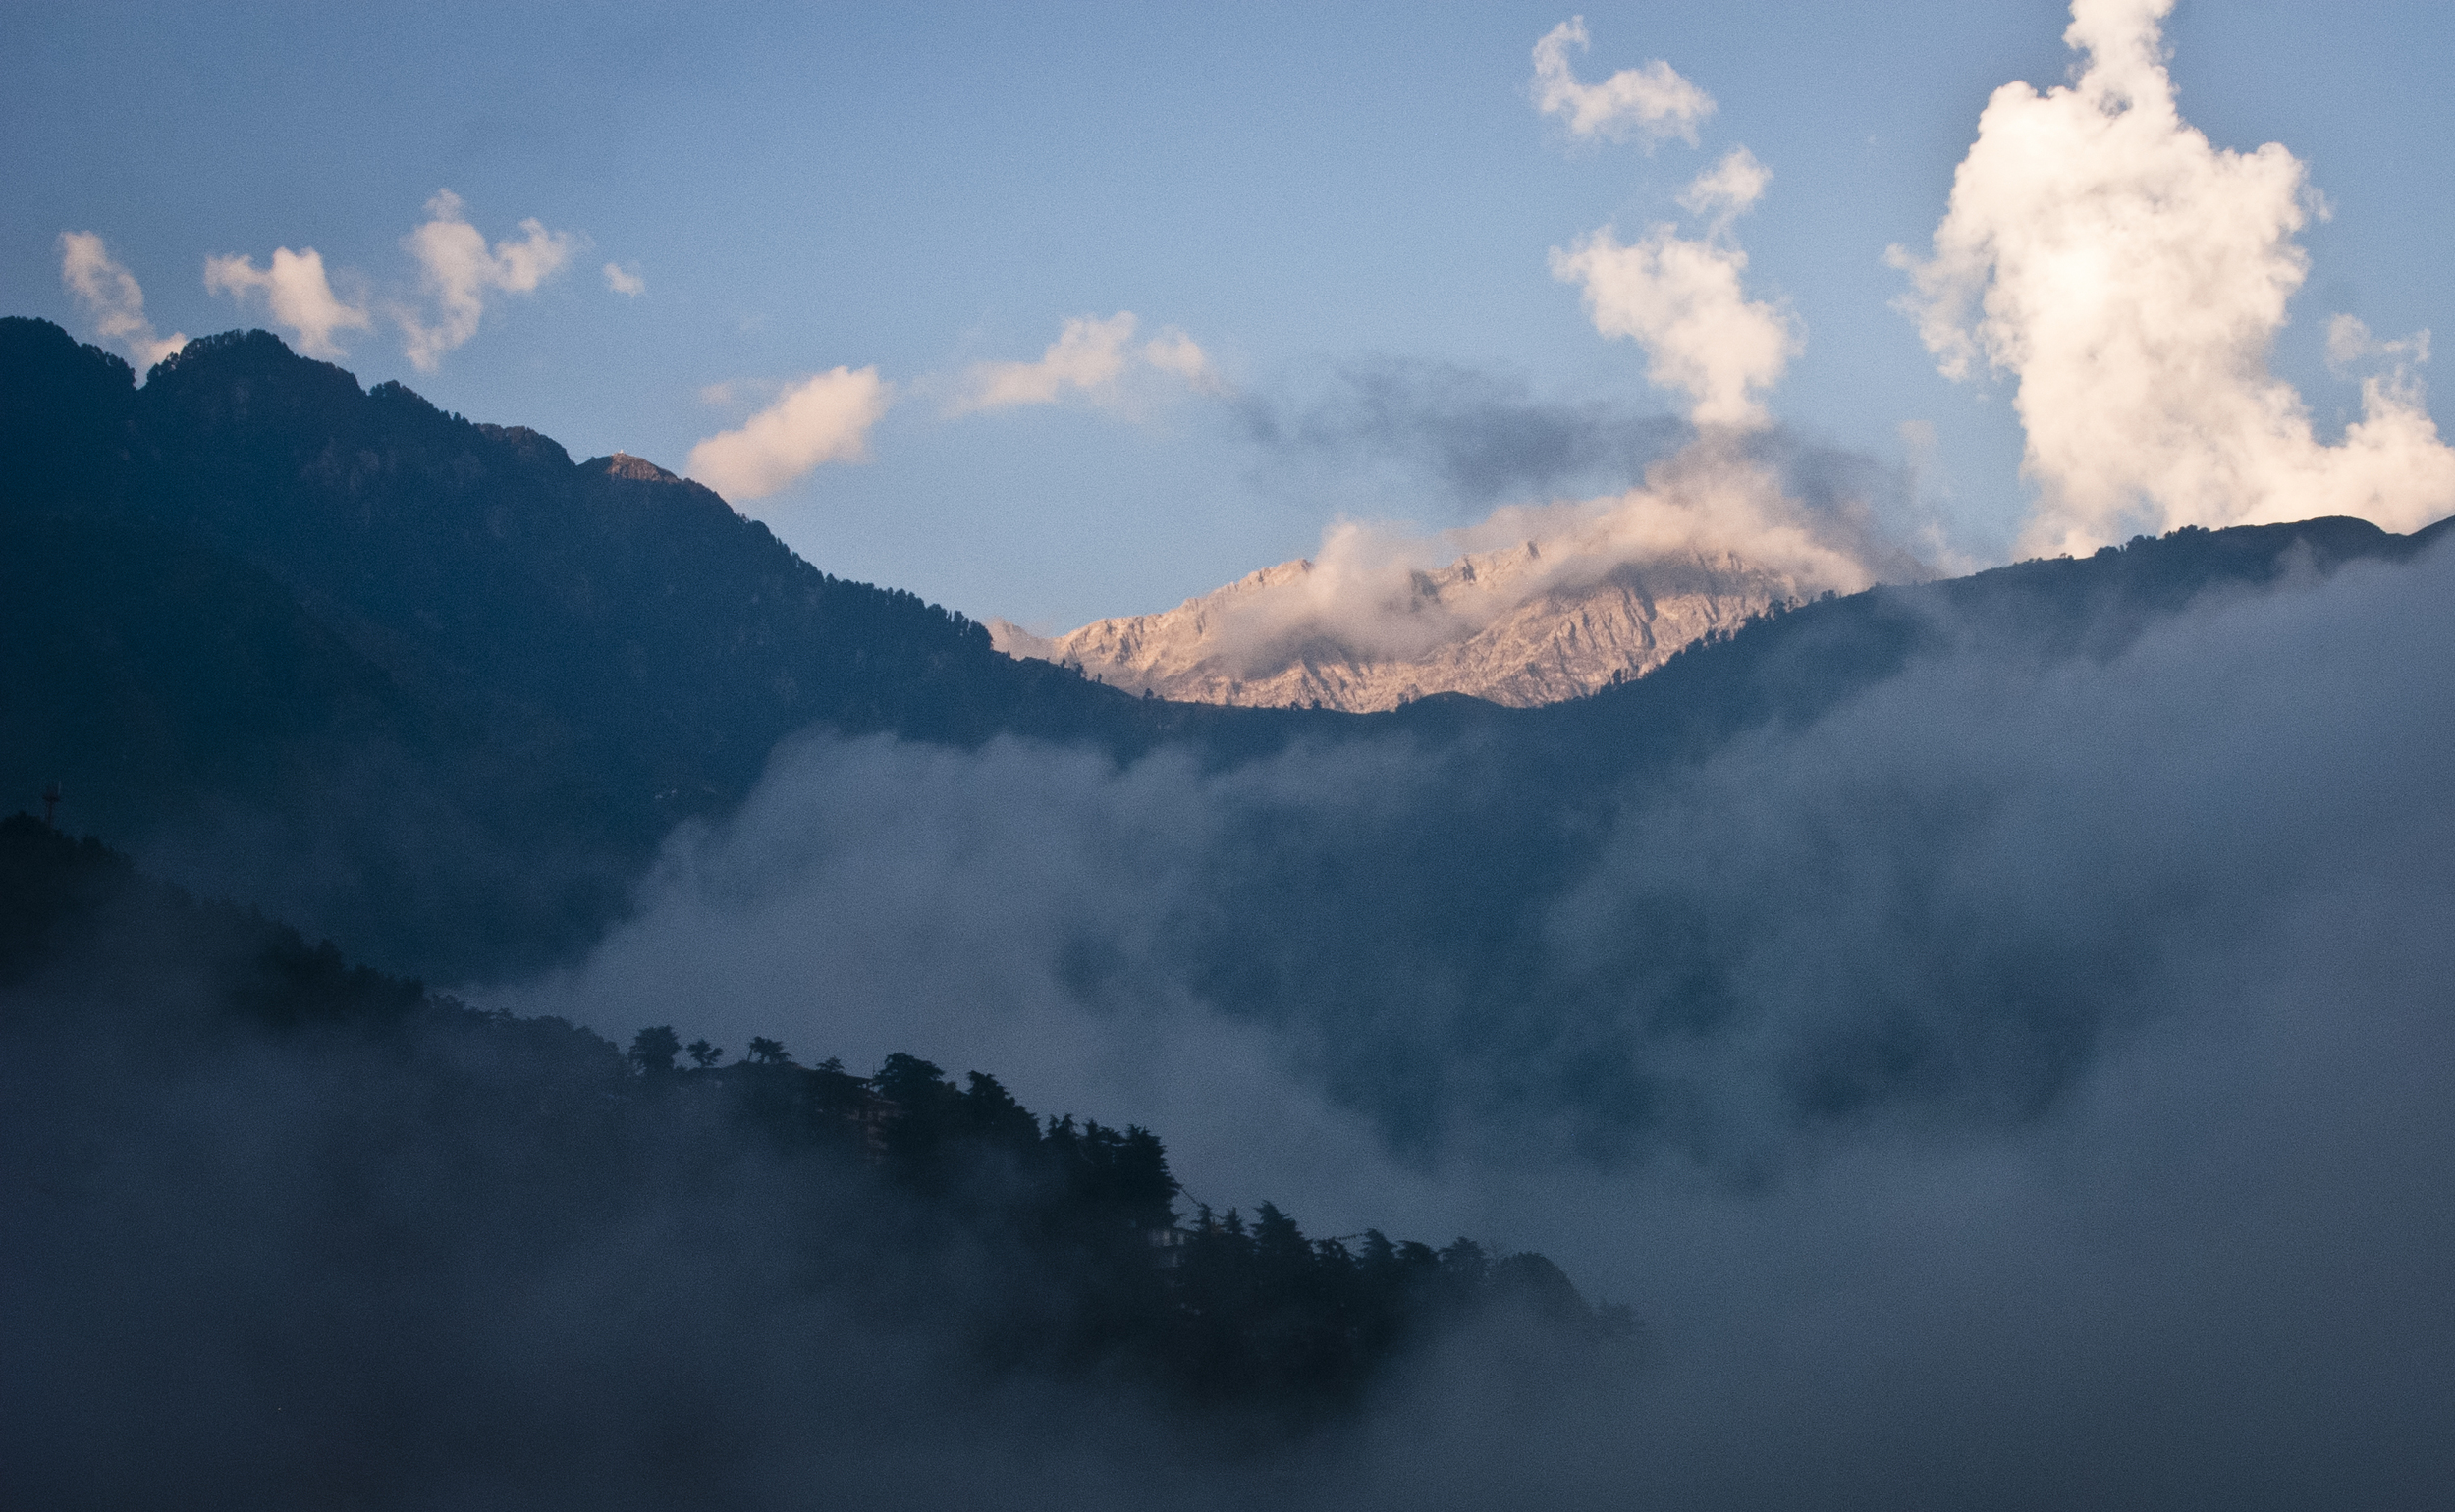 The Himalaya's peaked out behind the Dhauladhar Range, warmed by the sun.